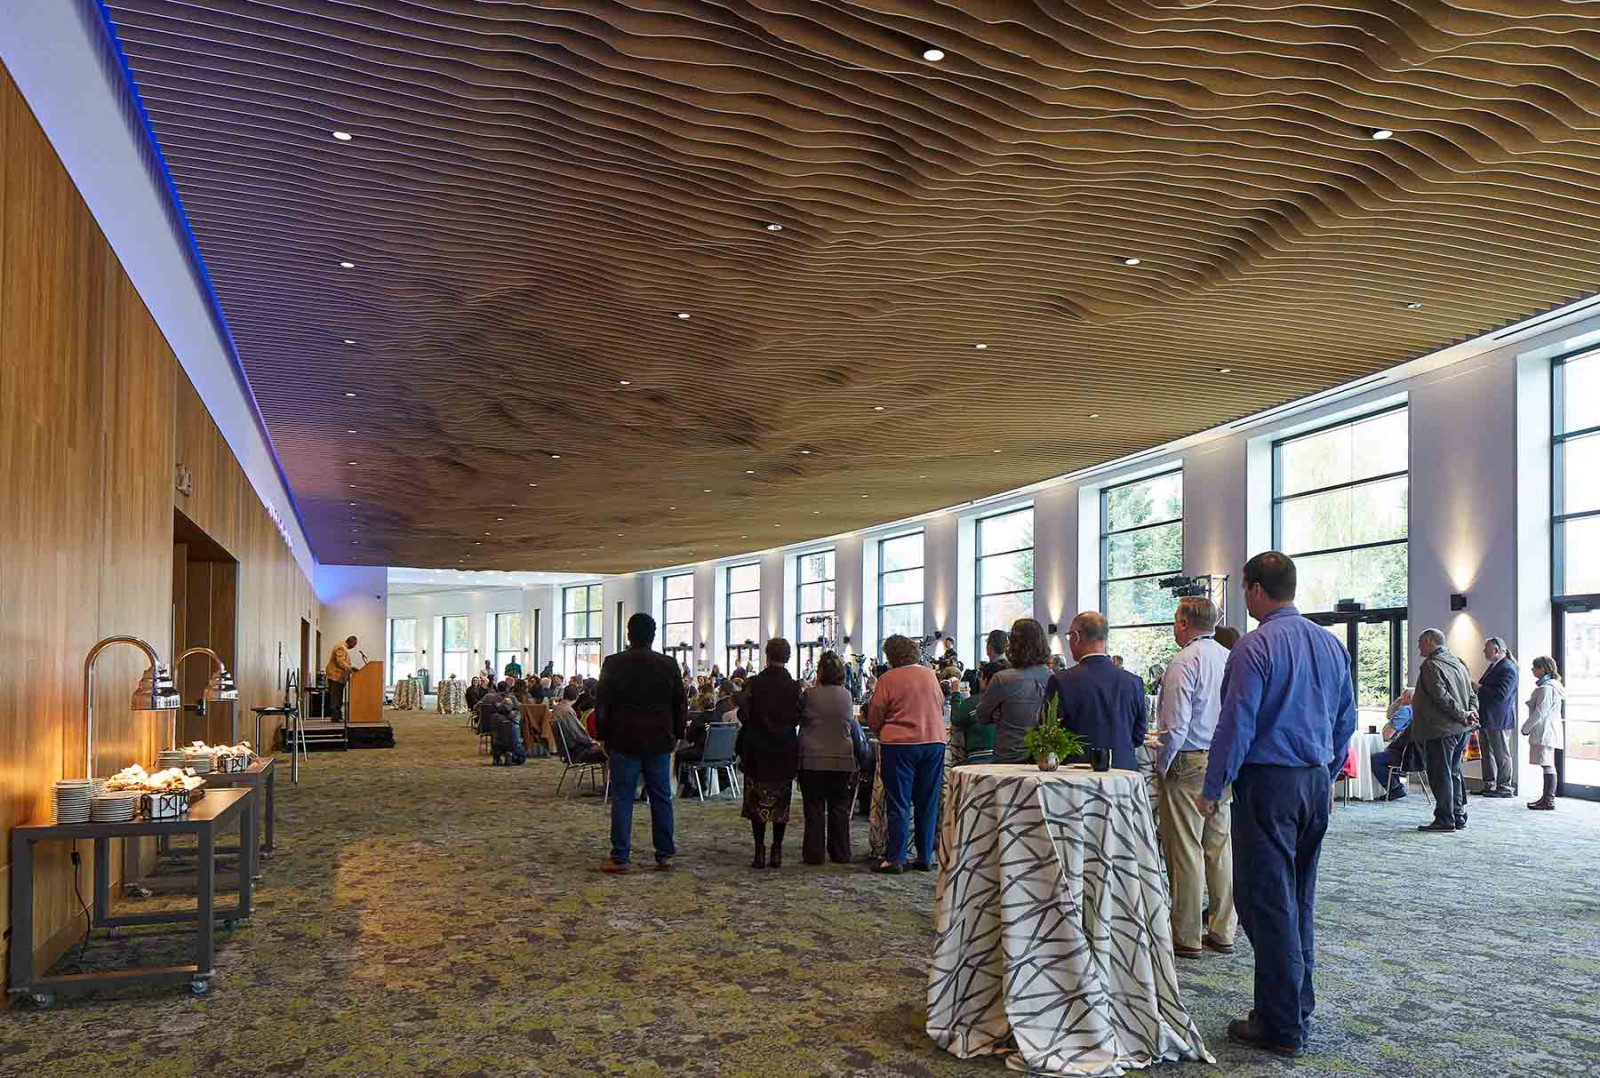 How to Improve Acoustics in Ballrooms and Event Spaces